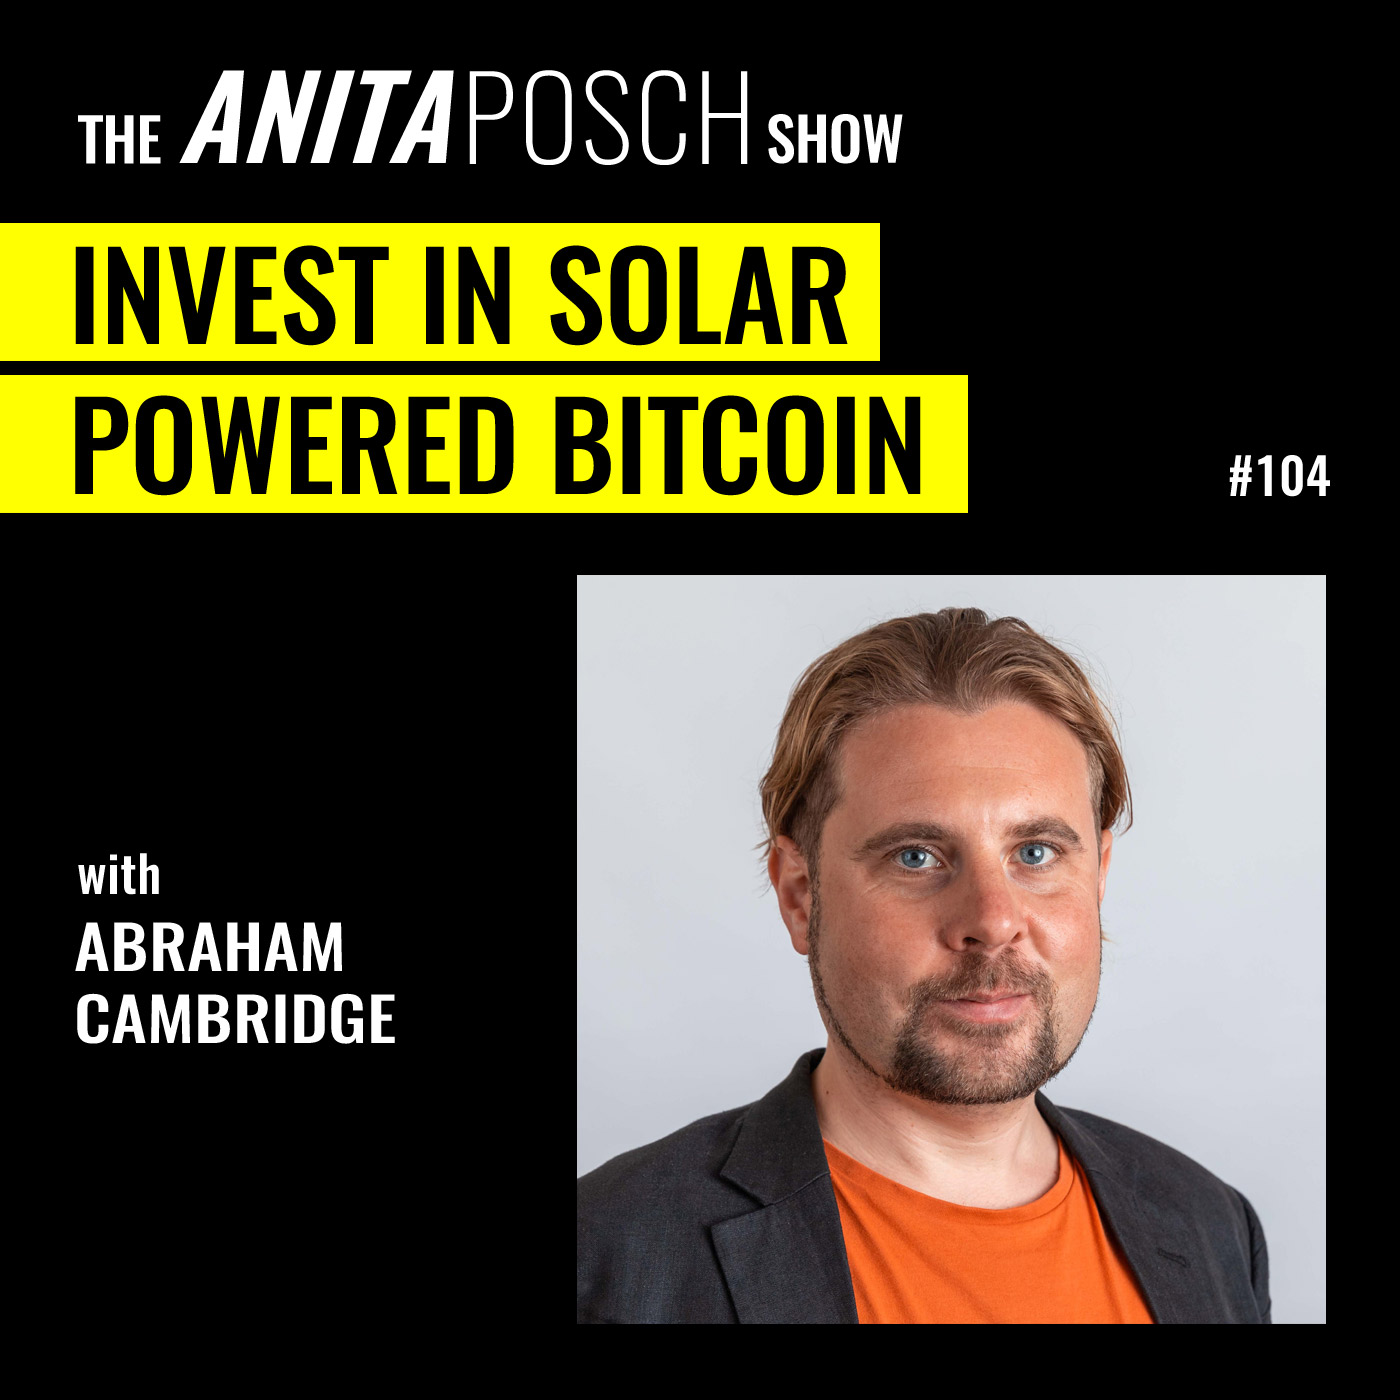 Abe Cambridge: Invest in Solar Powered Bitcoin